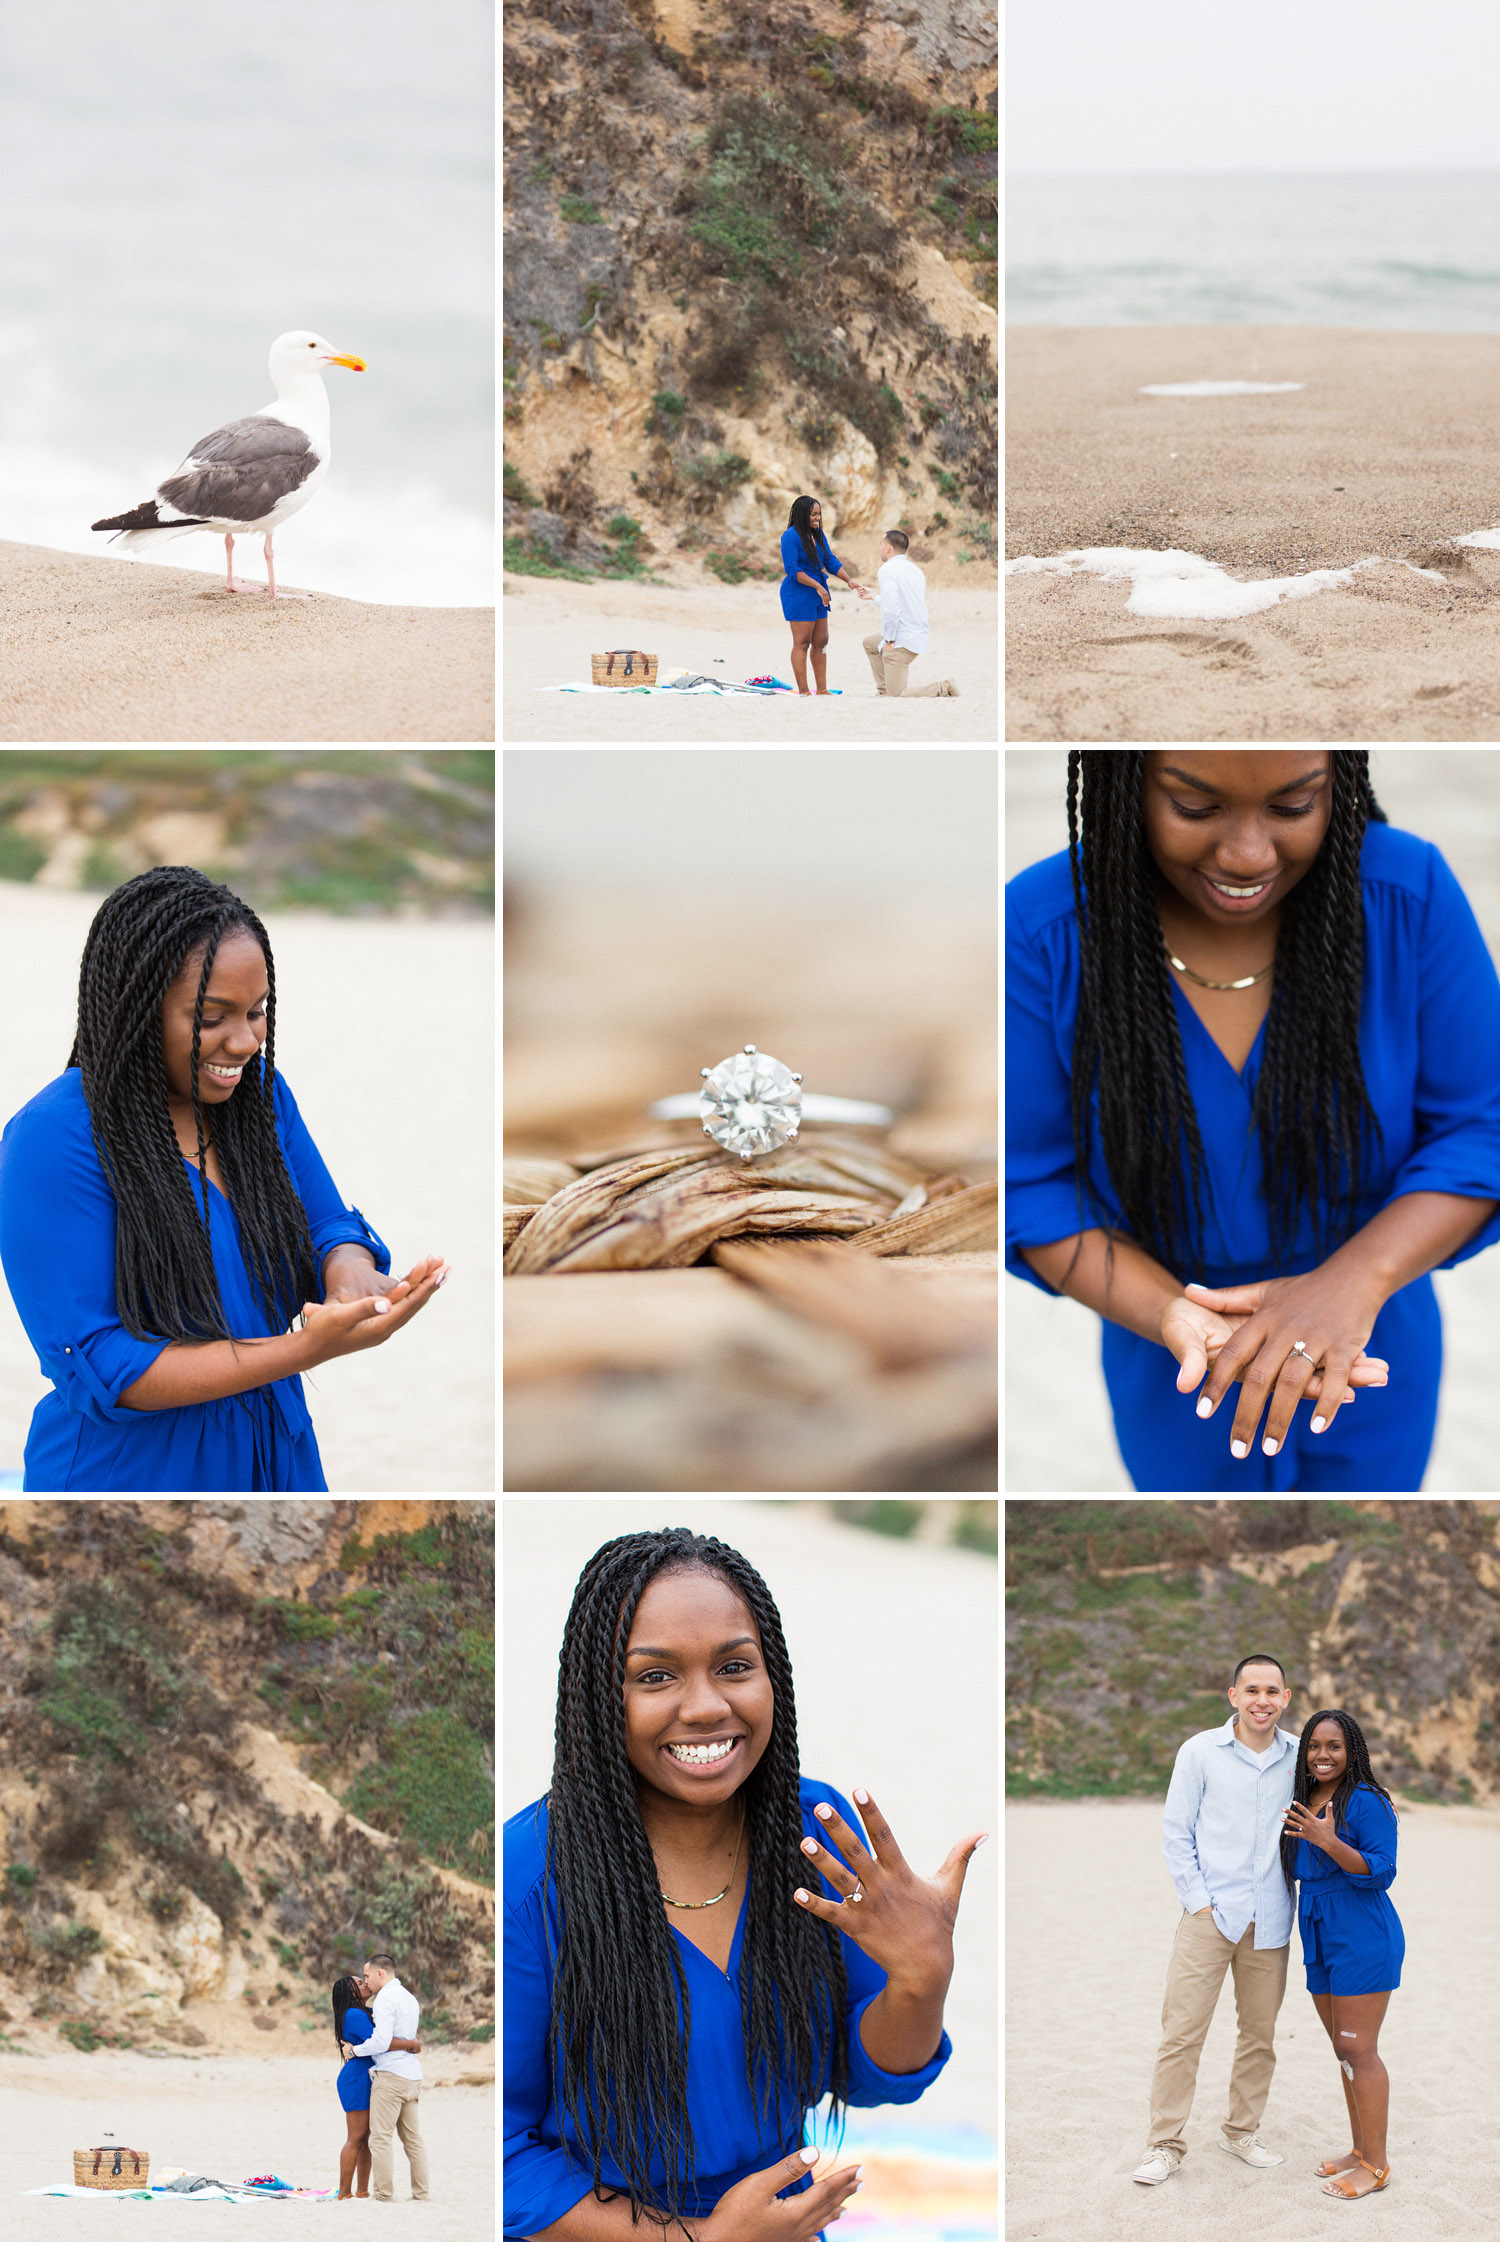 los-angeles-proposal-photographer003.jpg